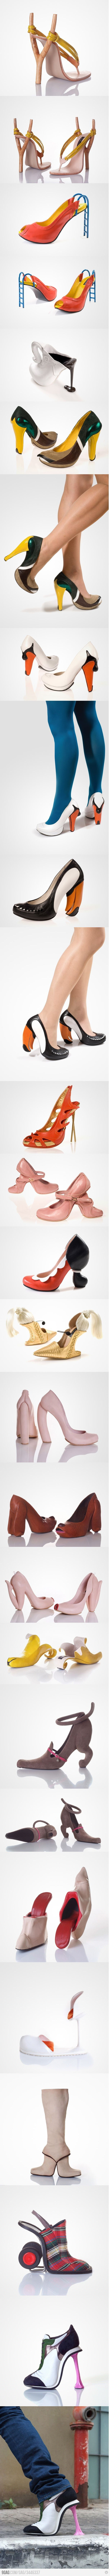 Shoes. Shoes. Shoes.: Fashion, Stuff, Style, Funny Shoes, Crazy Shoes, Funky Shoes, Weird Shoes, Interesting Shoes, High Heels